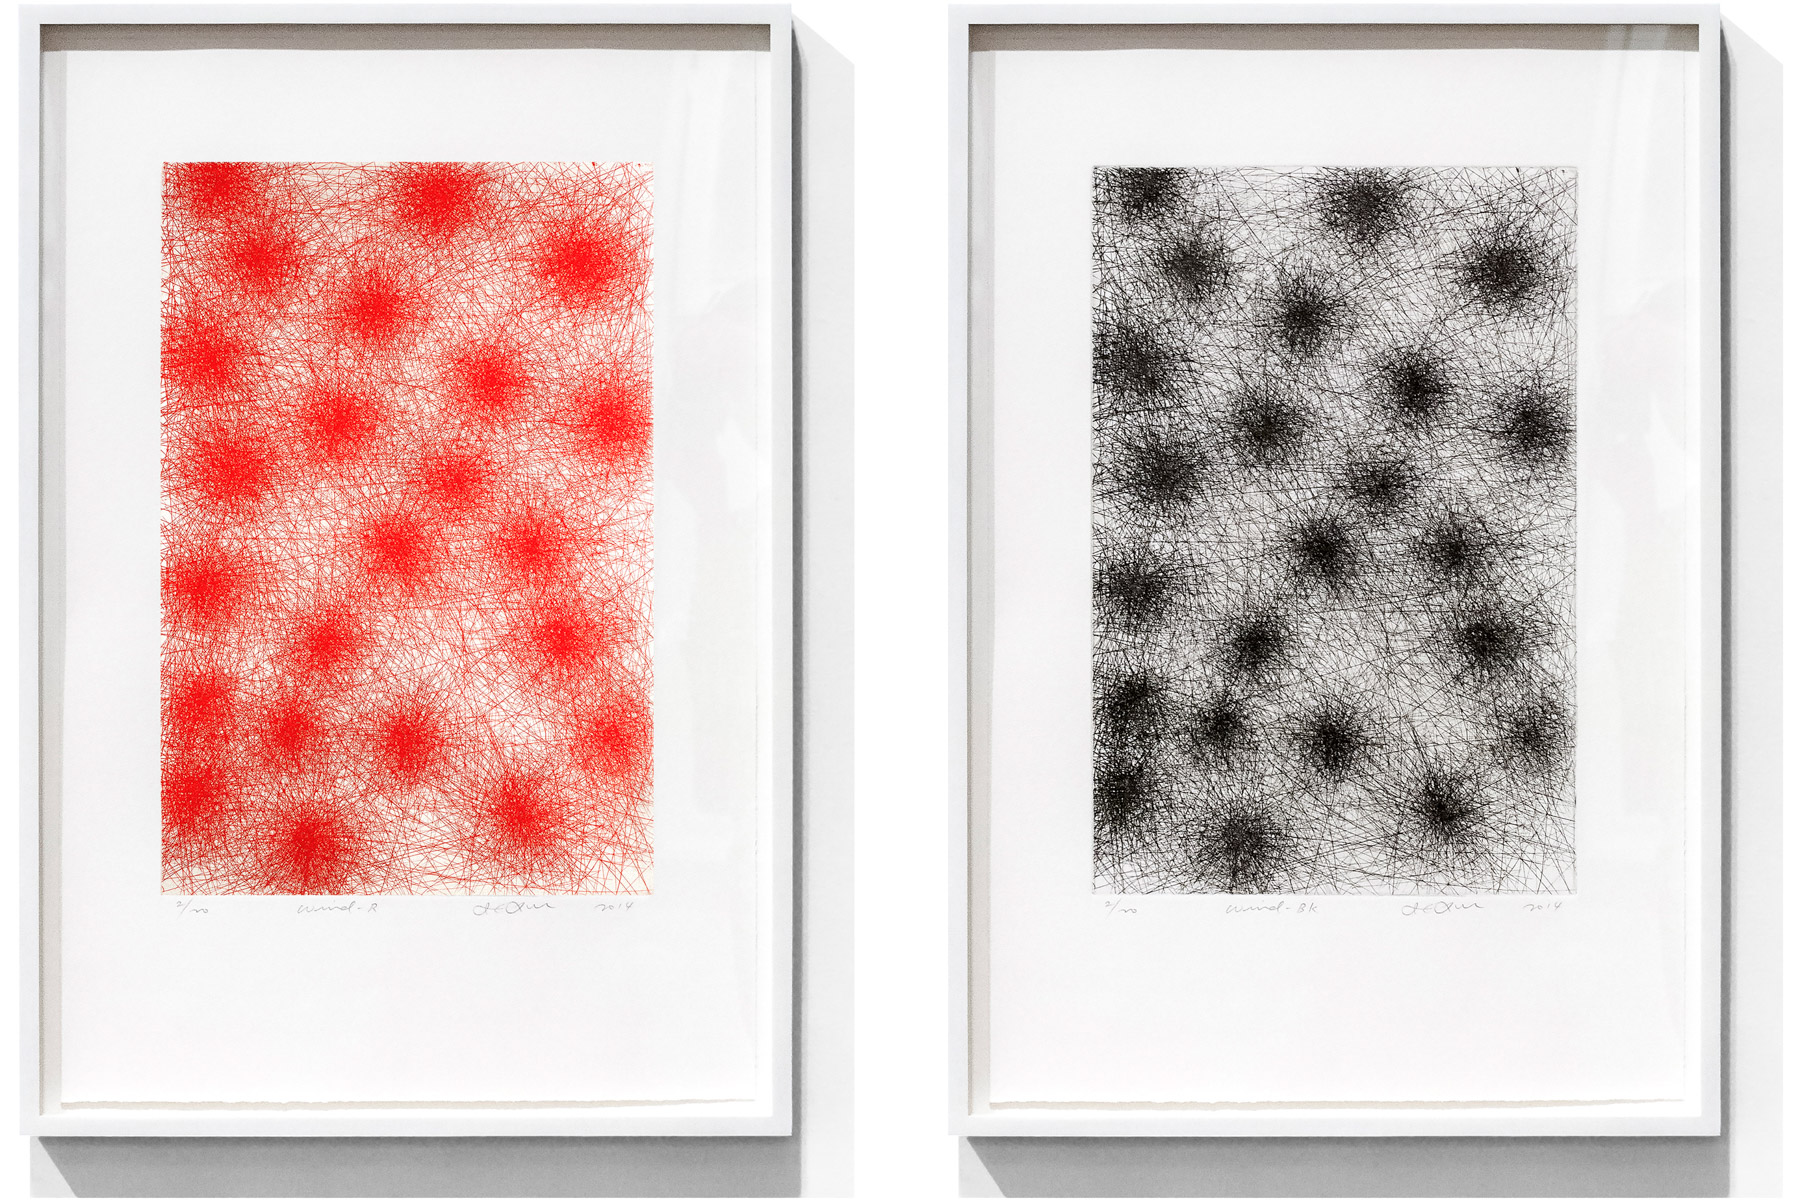 IL LEE, Wind-R and Wind-BK, 2014, etching on paper, each: 26 x 17 1/8 inches